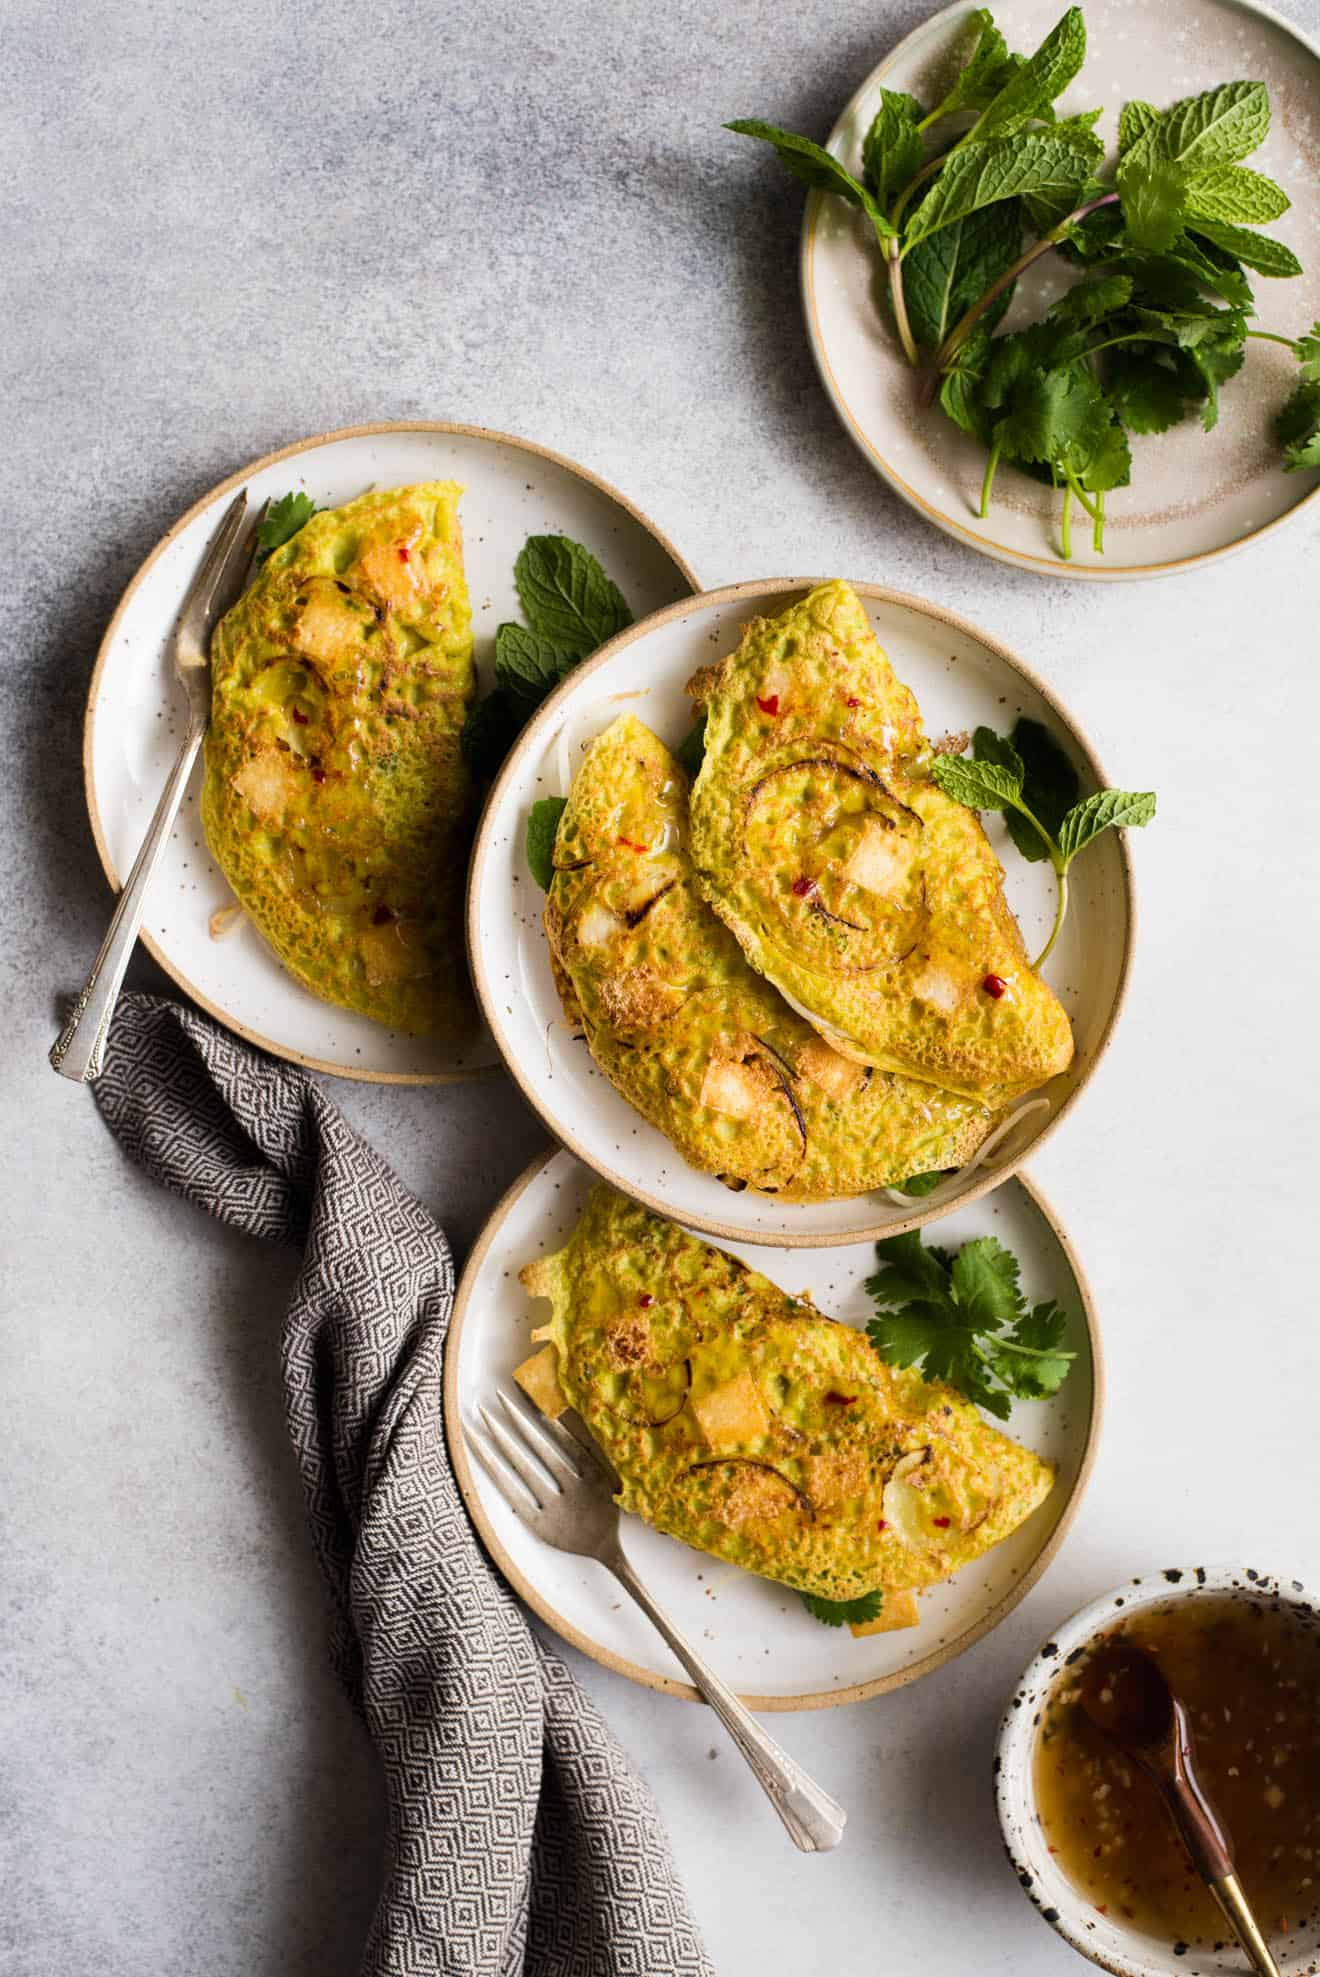 Vegan Banh Xeo - traditional banh xeo made with tofu! #glutenfree #healthy